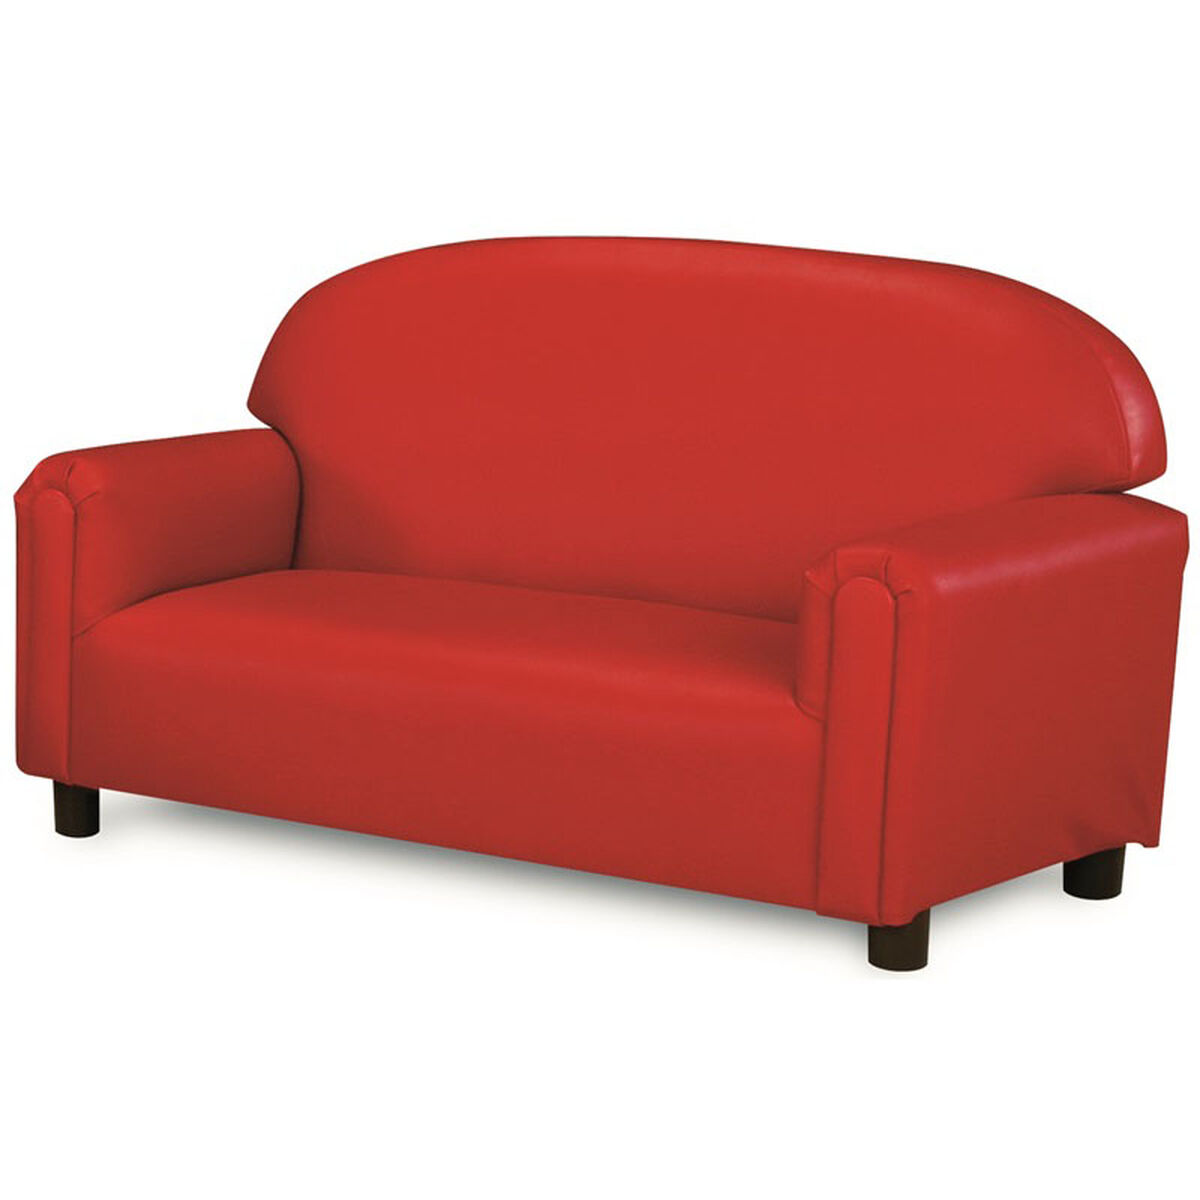 Our Just Like Home Preschool Size Overstuffed Vinyl Sofa Red 38 W